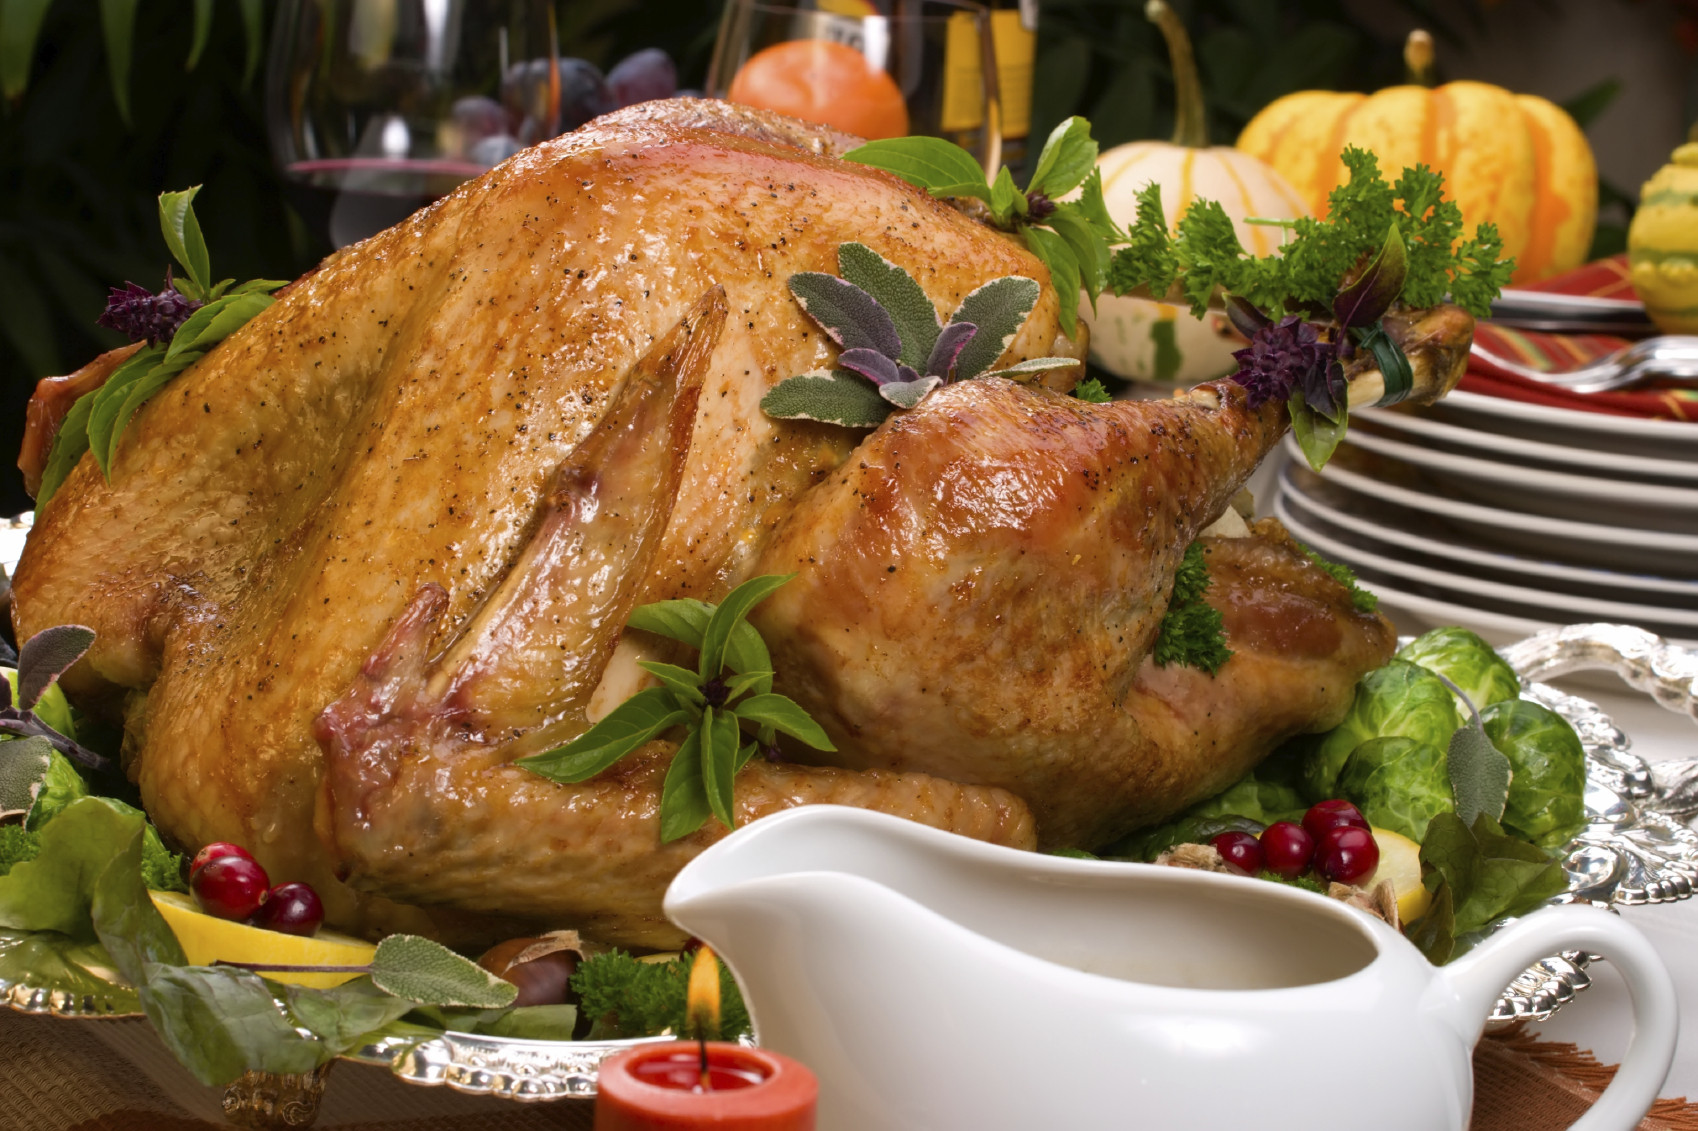 Prepare A Turkey For Thanksgiving  Tips for preparing your holiday turkey – News from